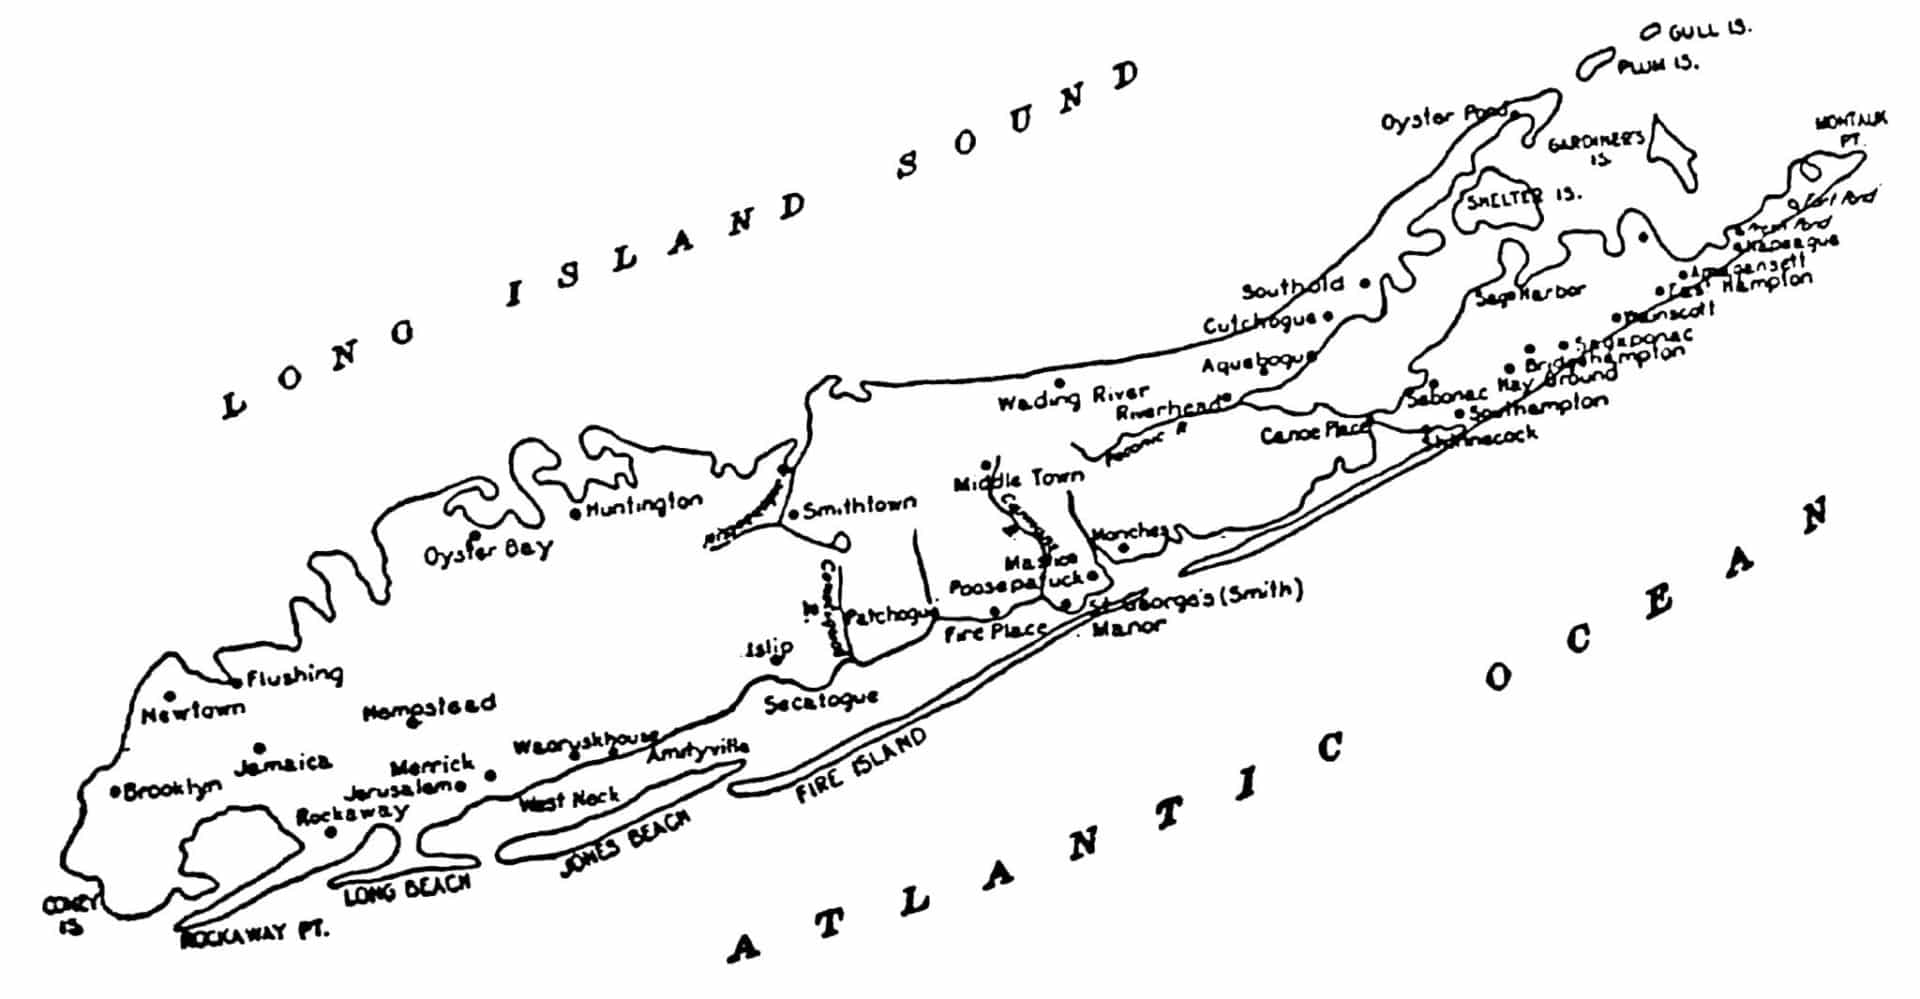 Indian-Missions-on-Long-Island-Gaynell-Stone-History-and-Archaeology-of-the-Montauk-pp-194-1993 Indian Missions on Long Island Jeremy Dennis On This Site